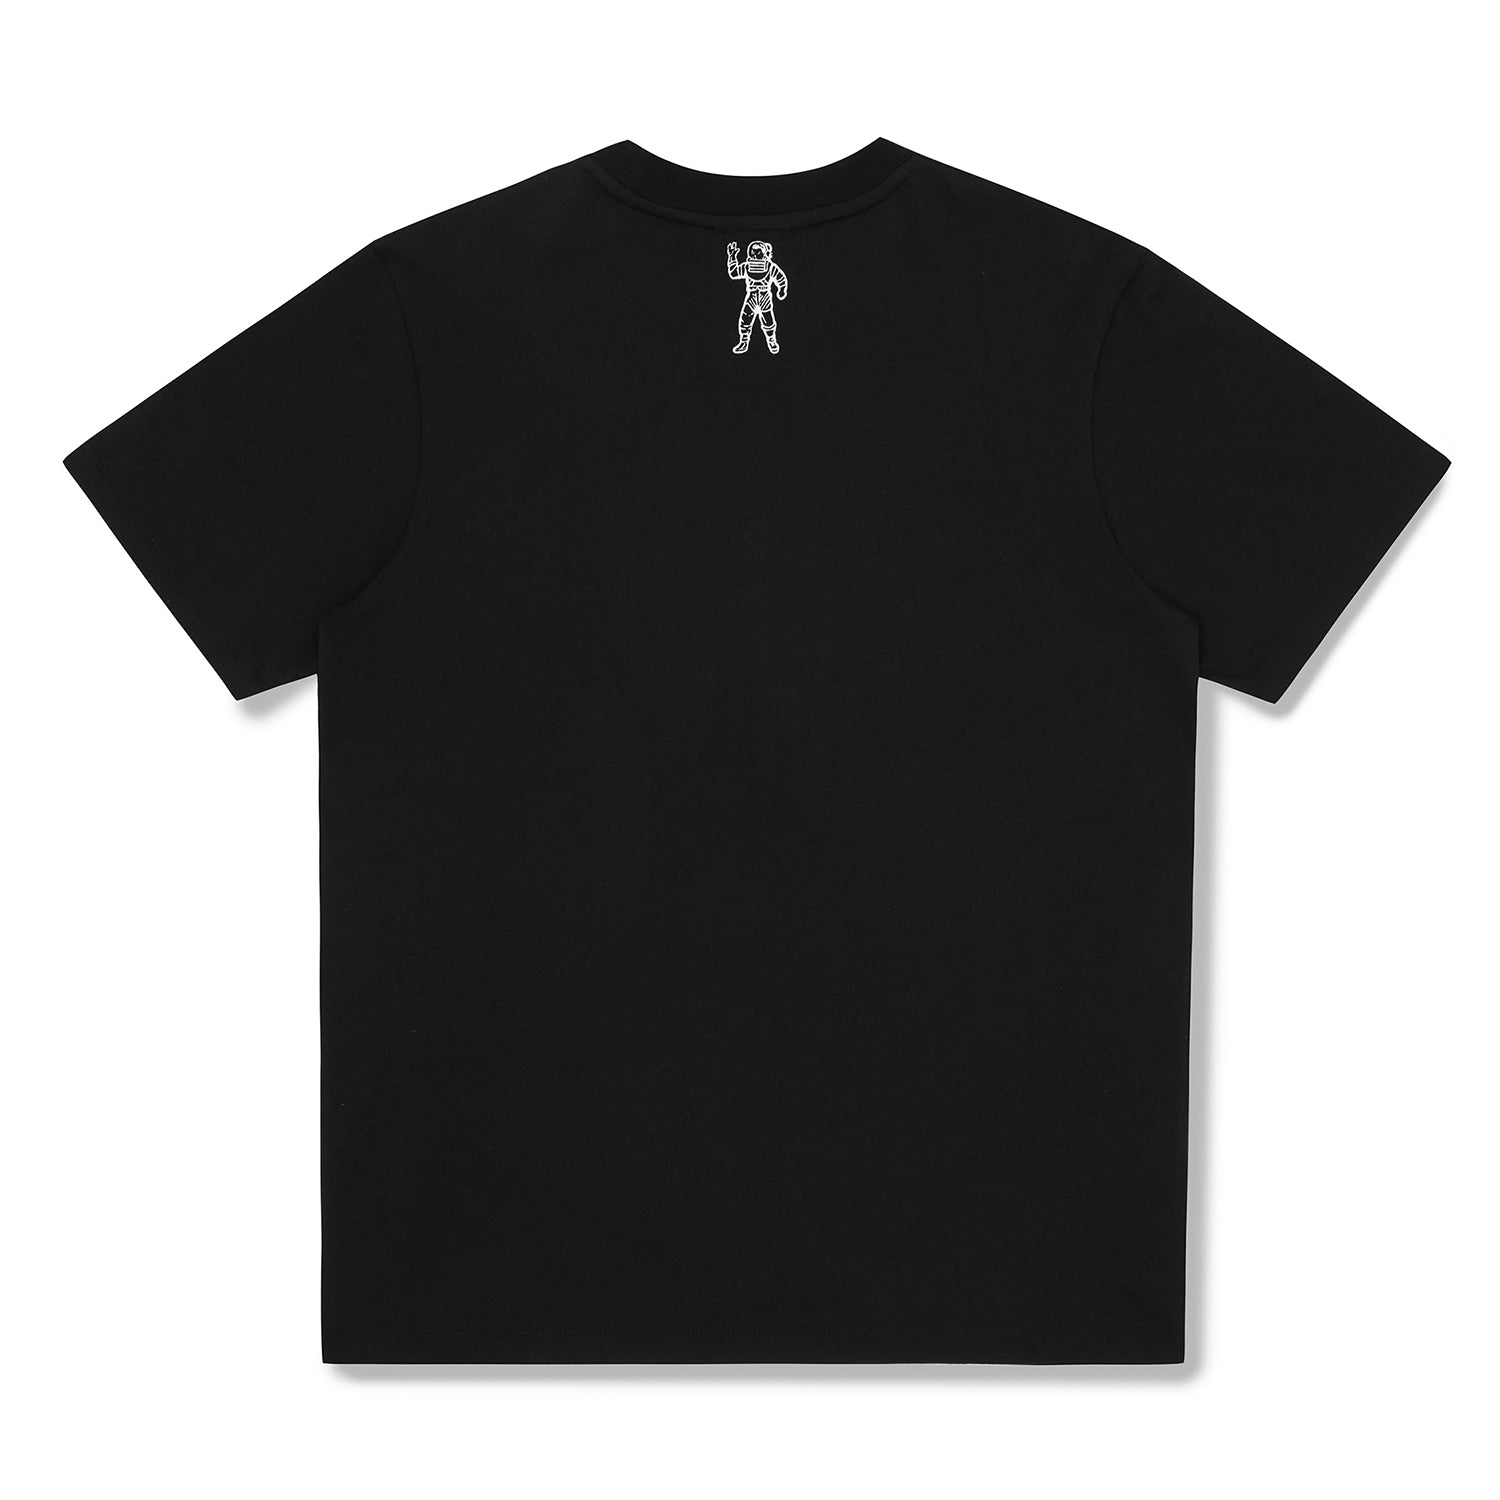 ARCH LOGO FILL T-SHIRT